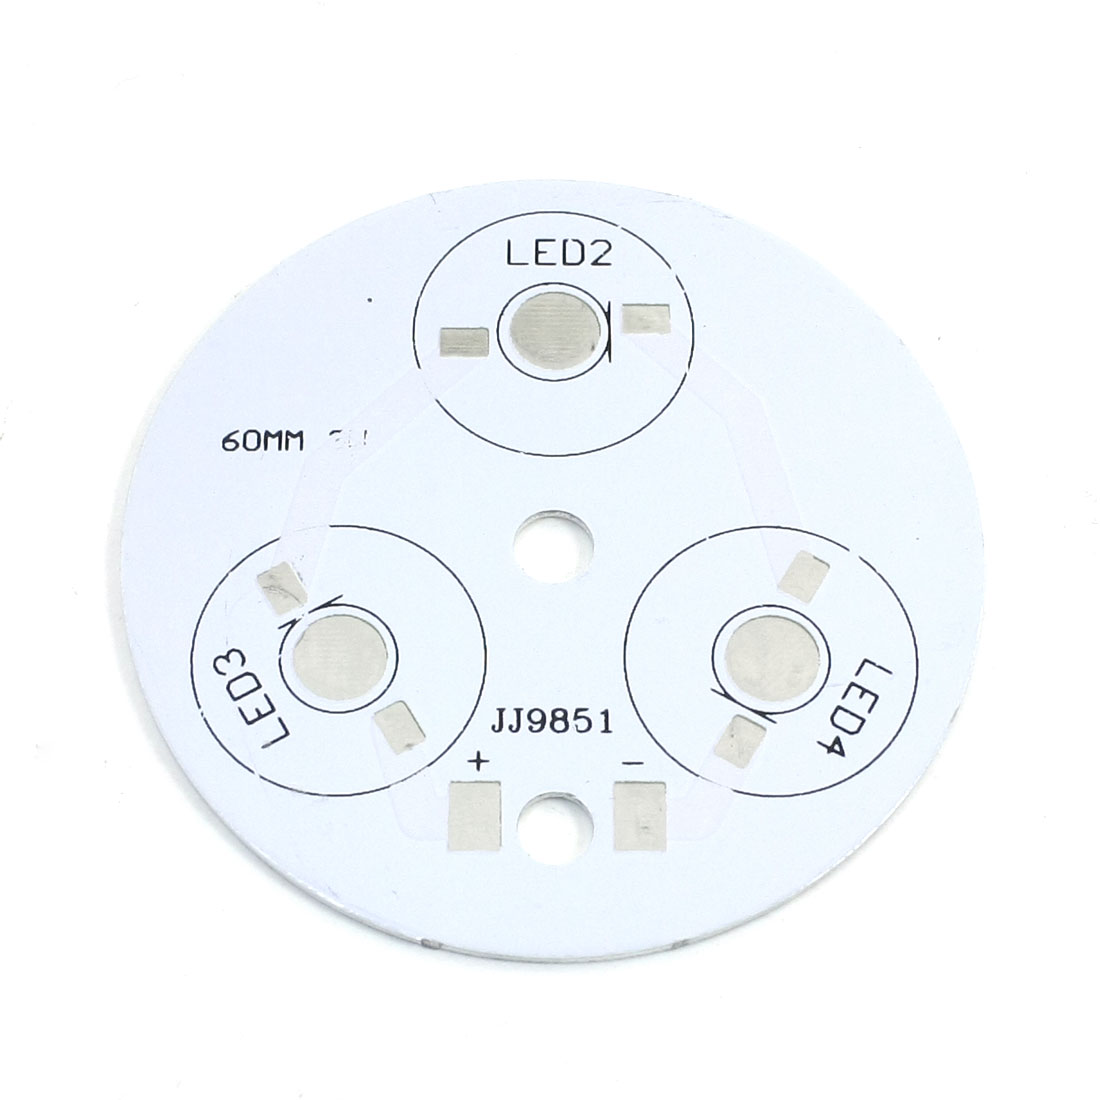 LED Aluminum PCB Circuit Board 60mm for 3 x 1W/3W/5W LEDs in Series